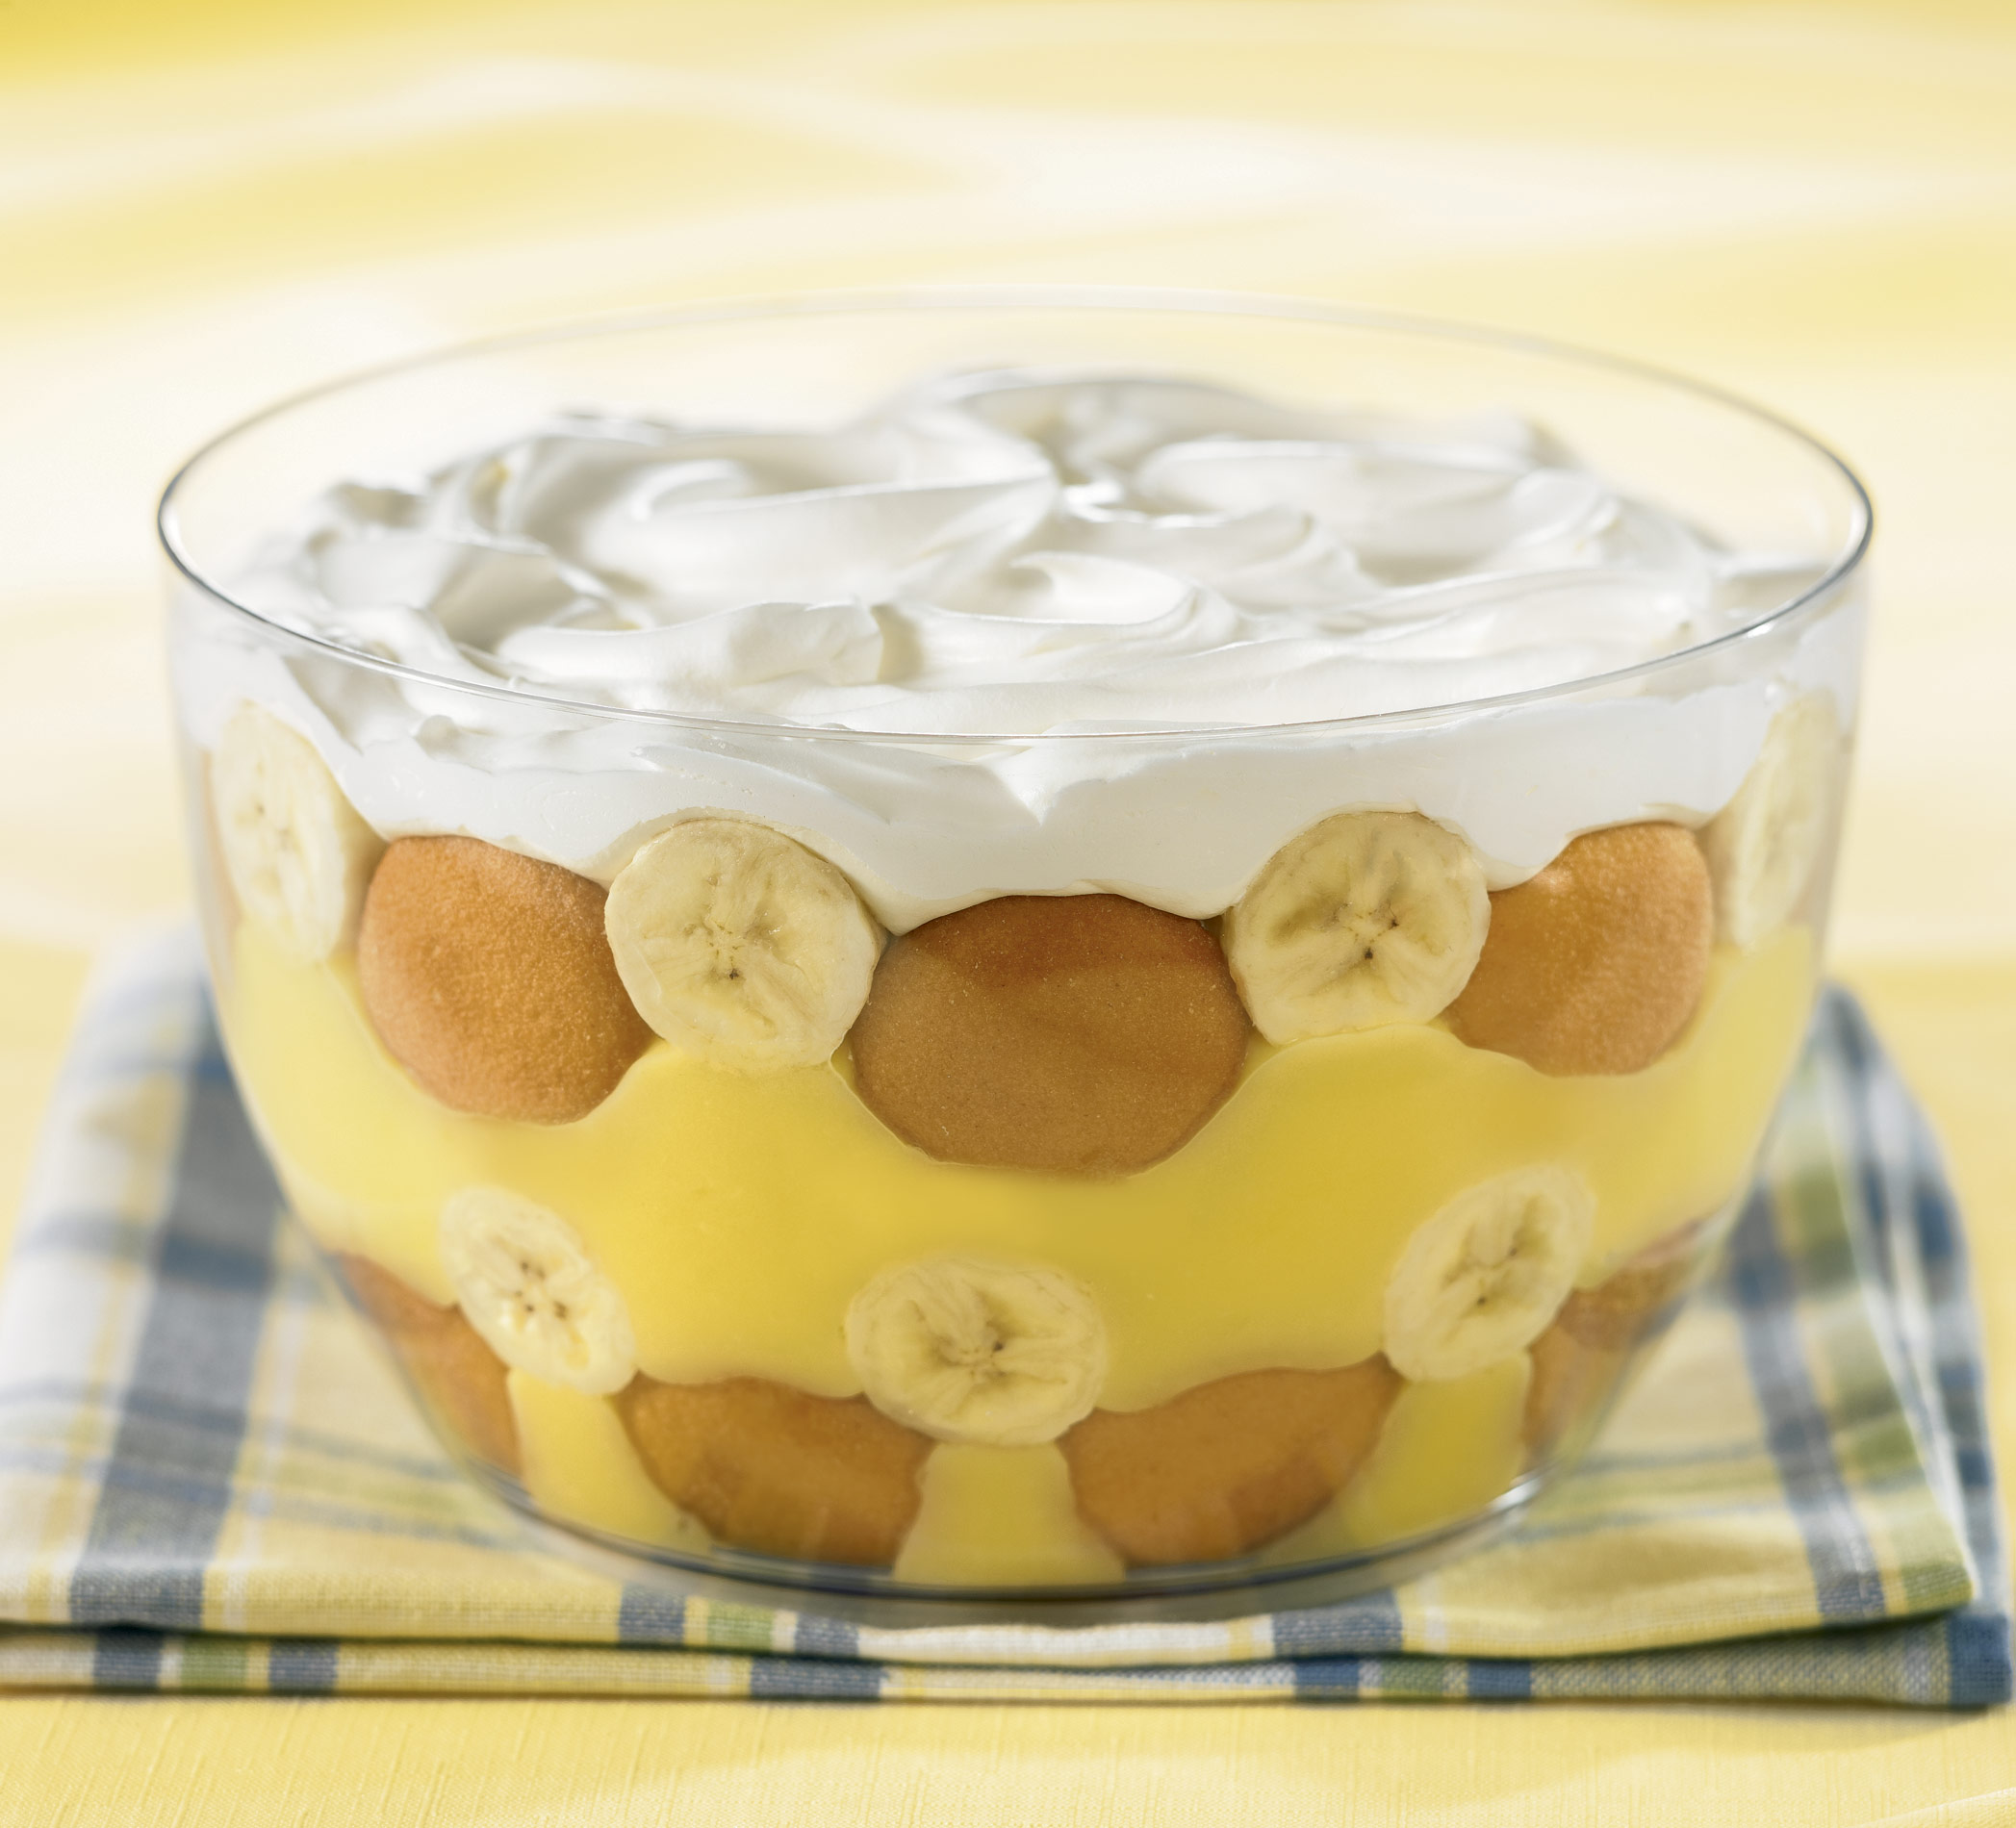 BananaPudding